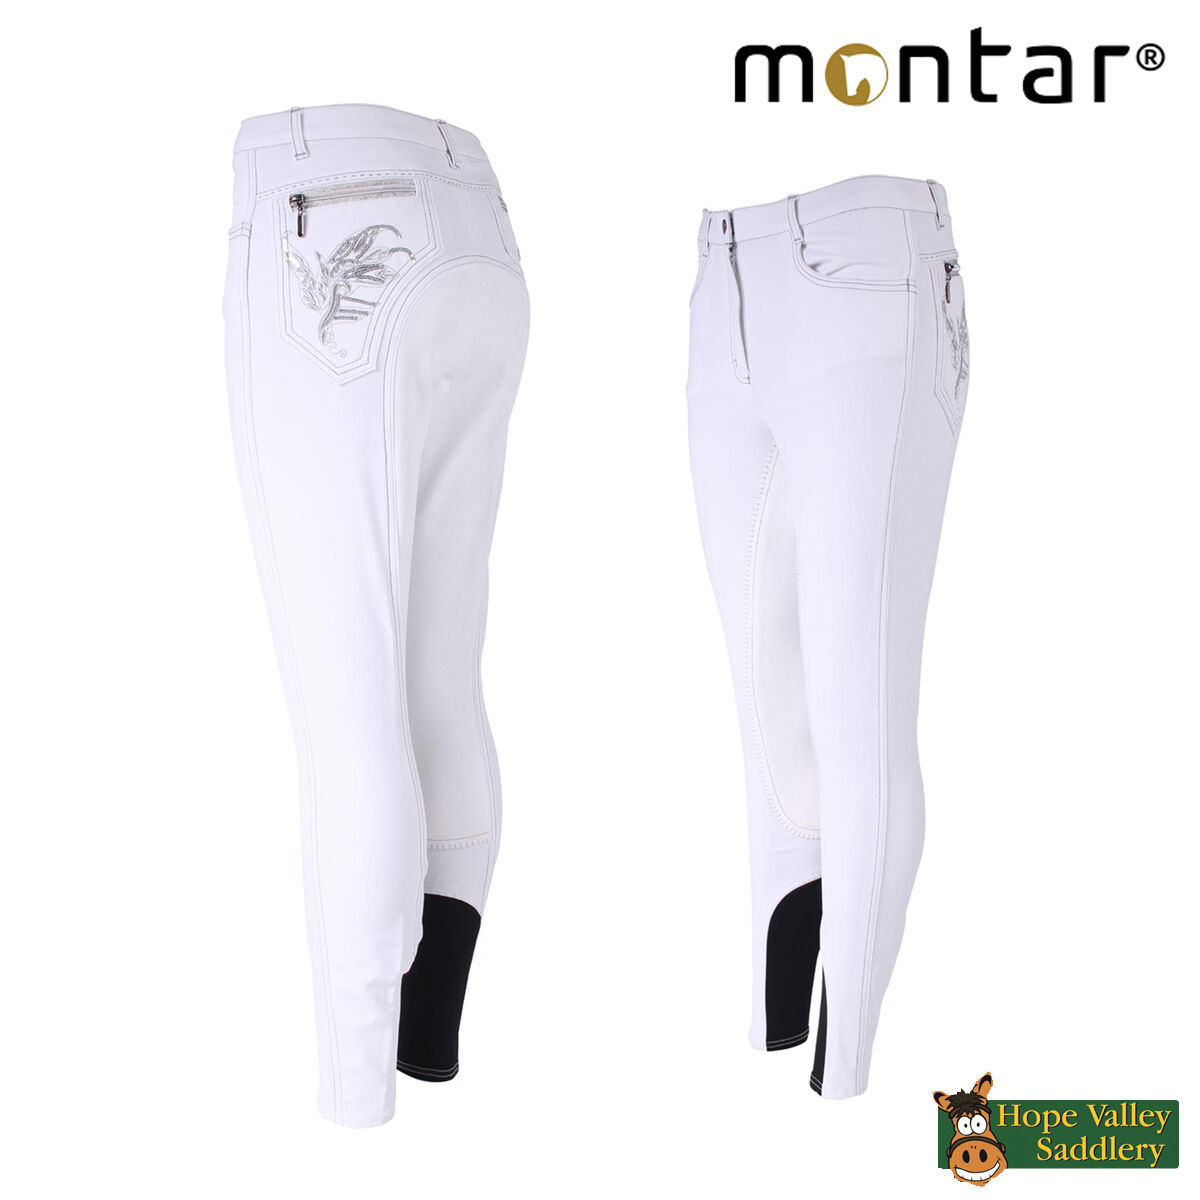 Montar Paillet Embroidered Full Seat Ladies Breeches (2061-1) - Sale